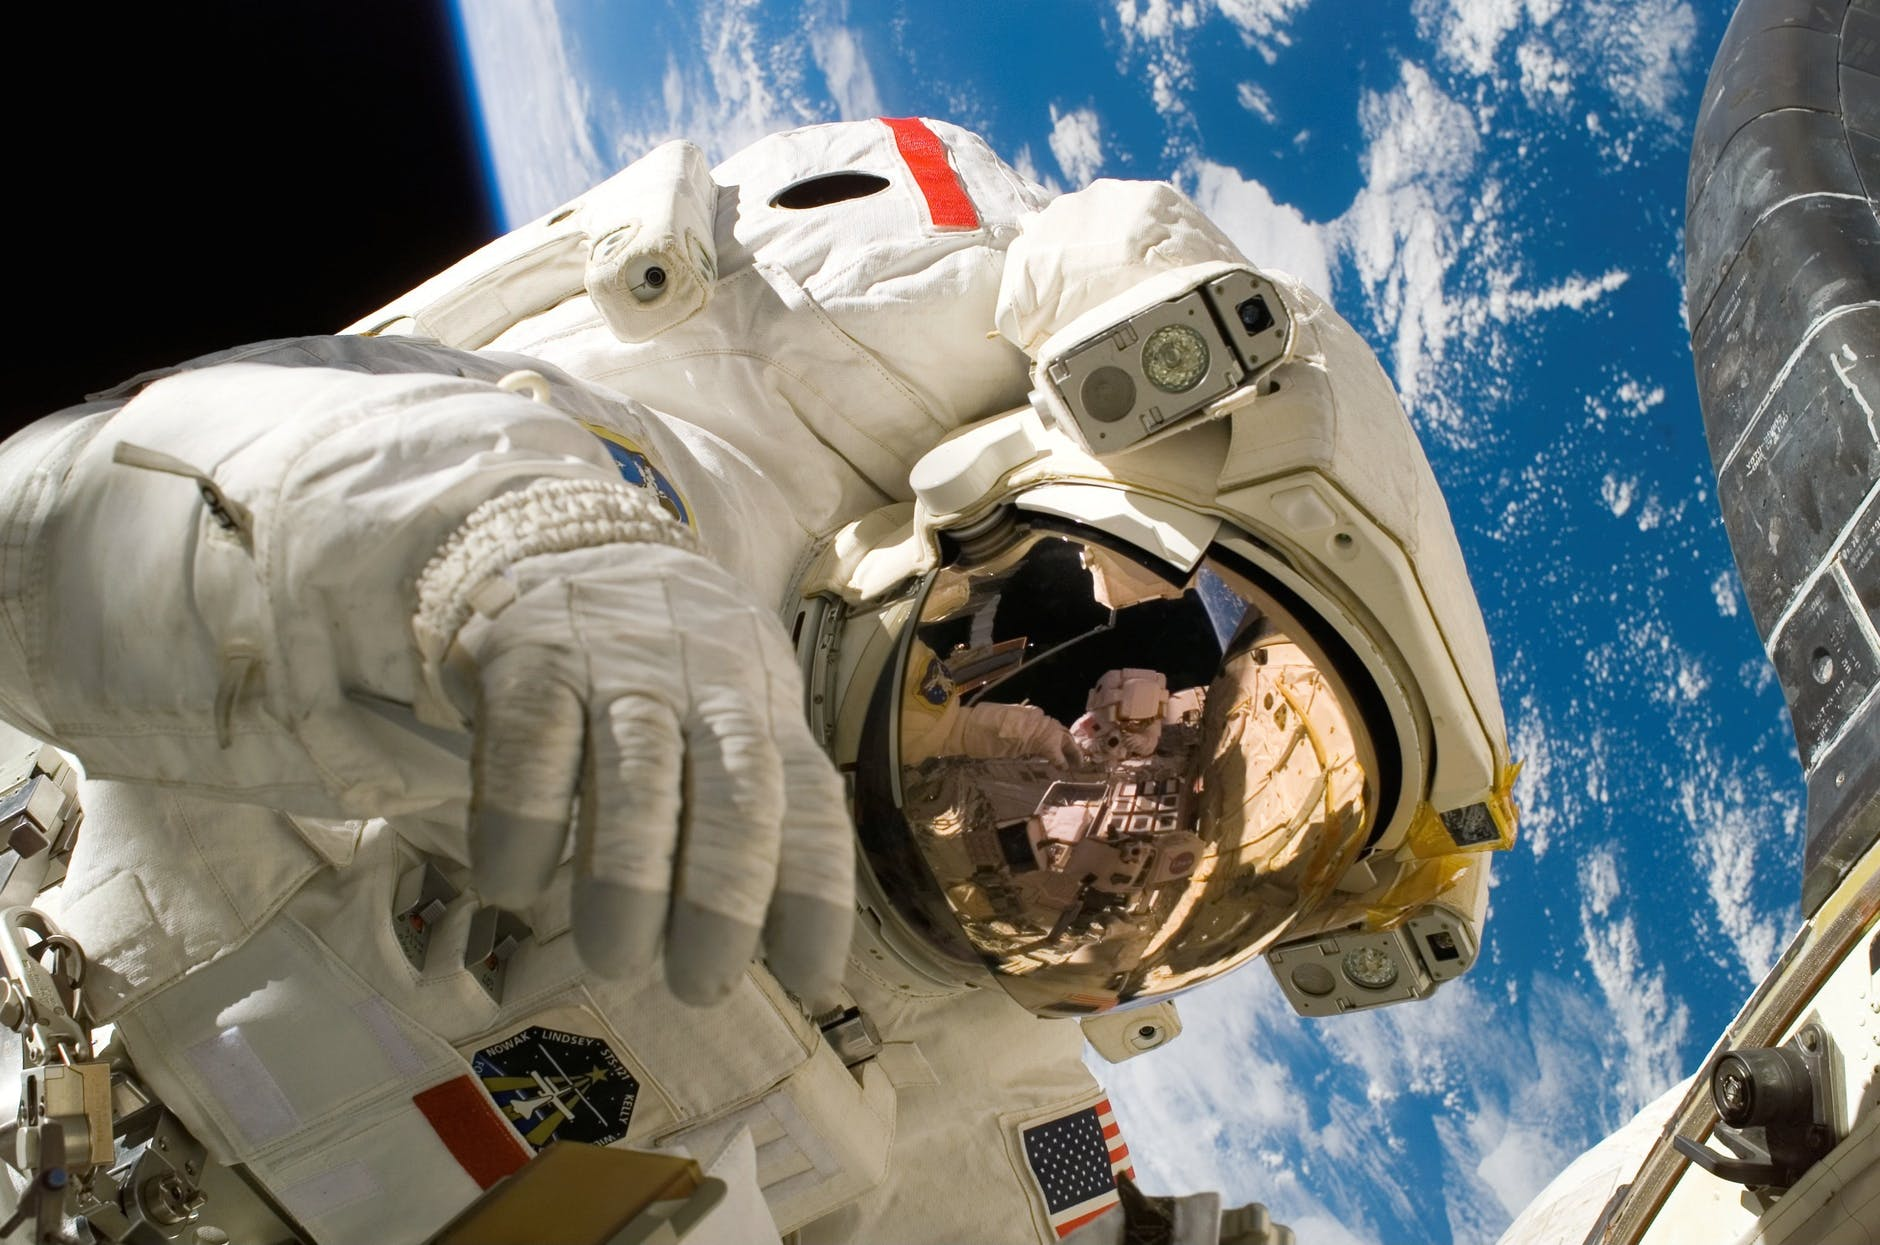 spaceflight alters mitochondrial processes